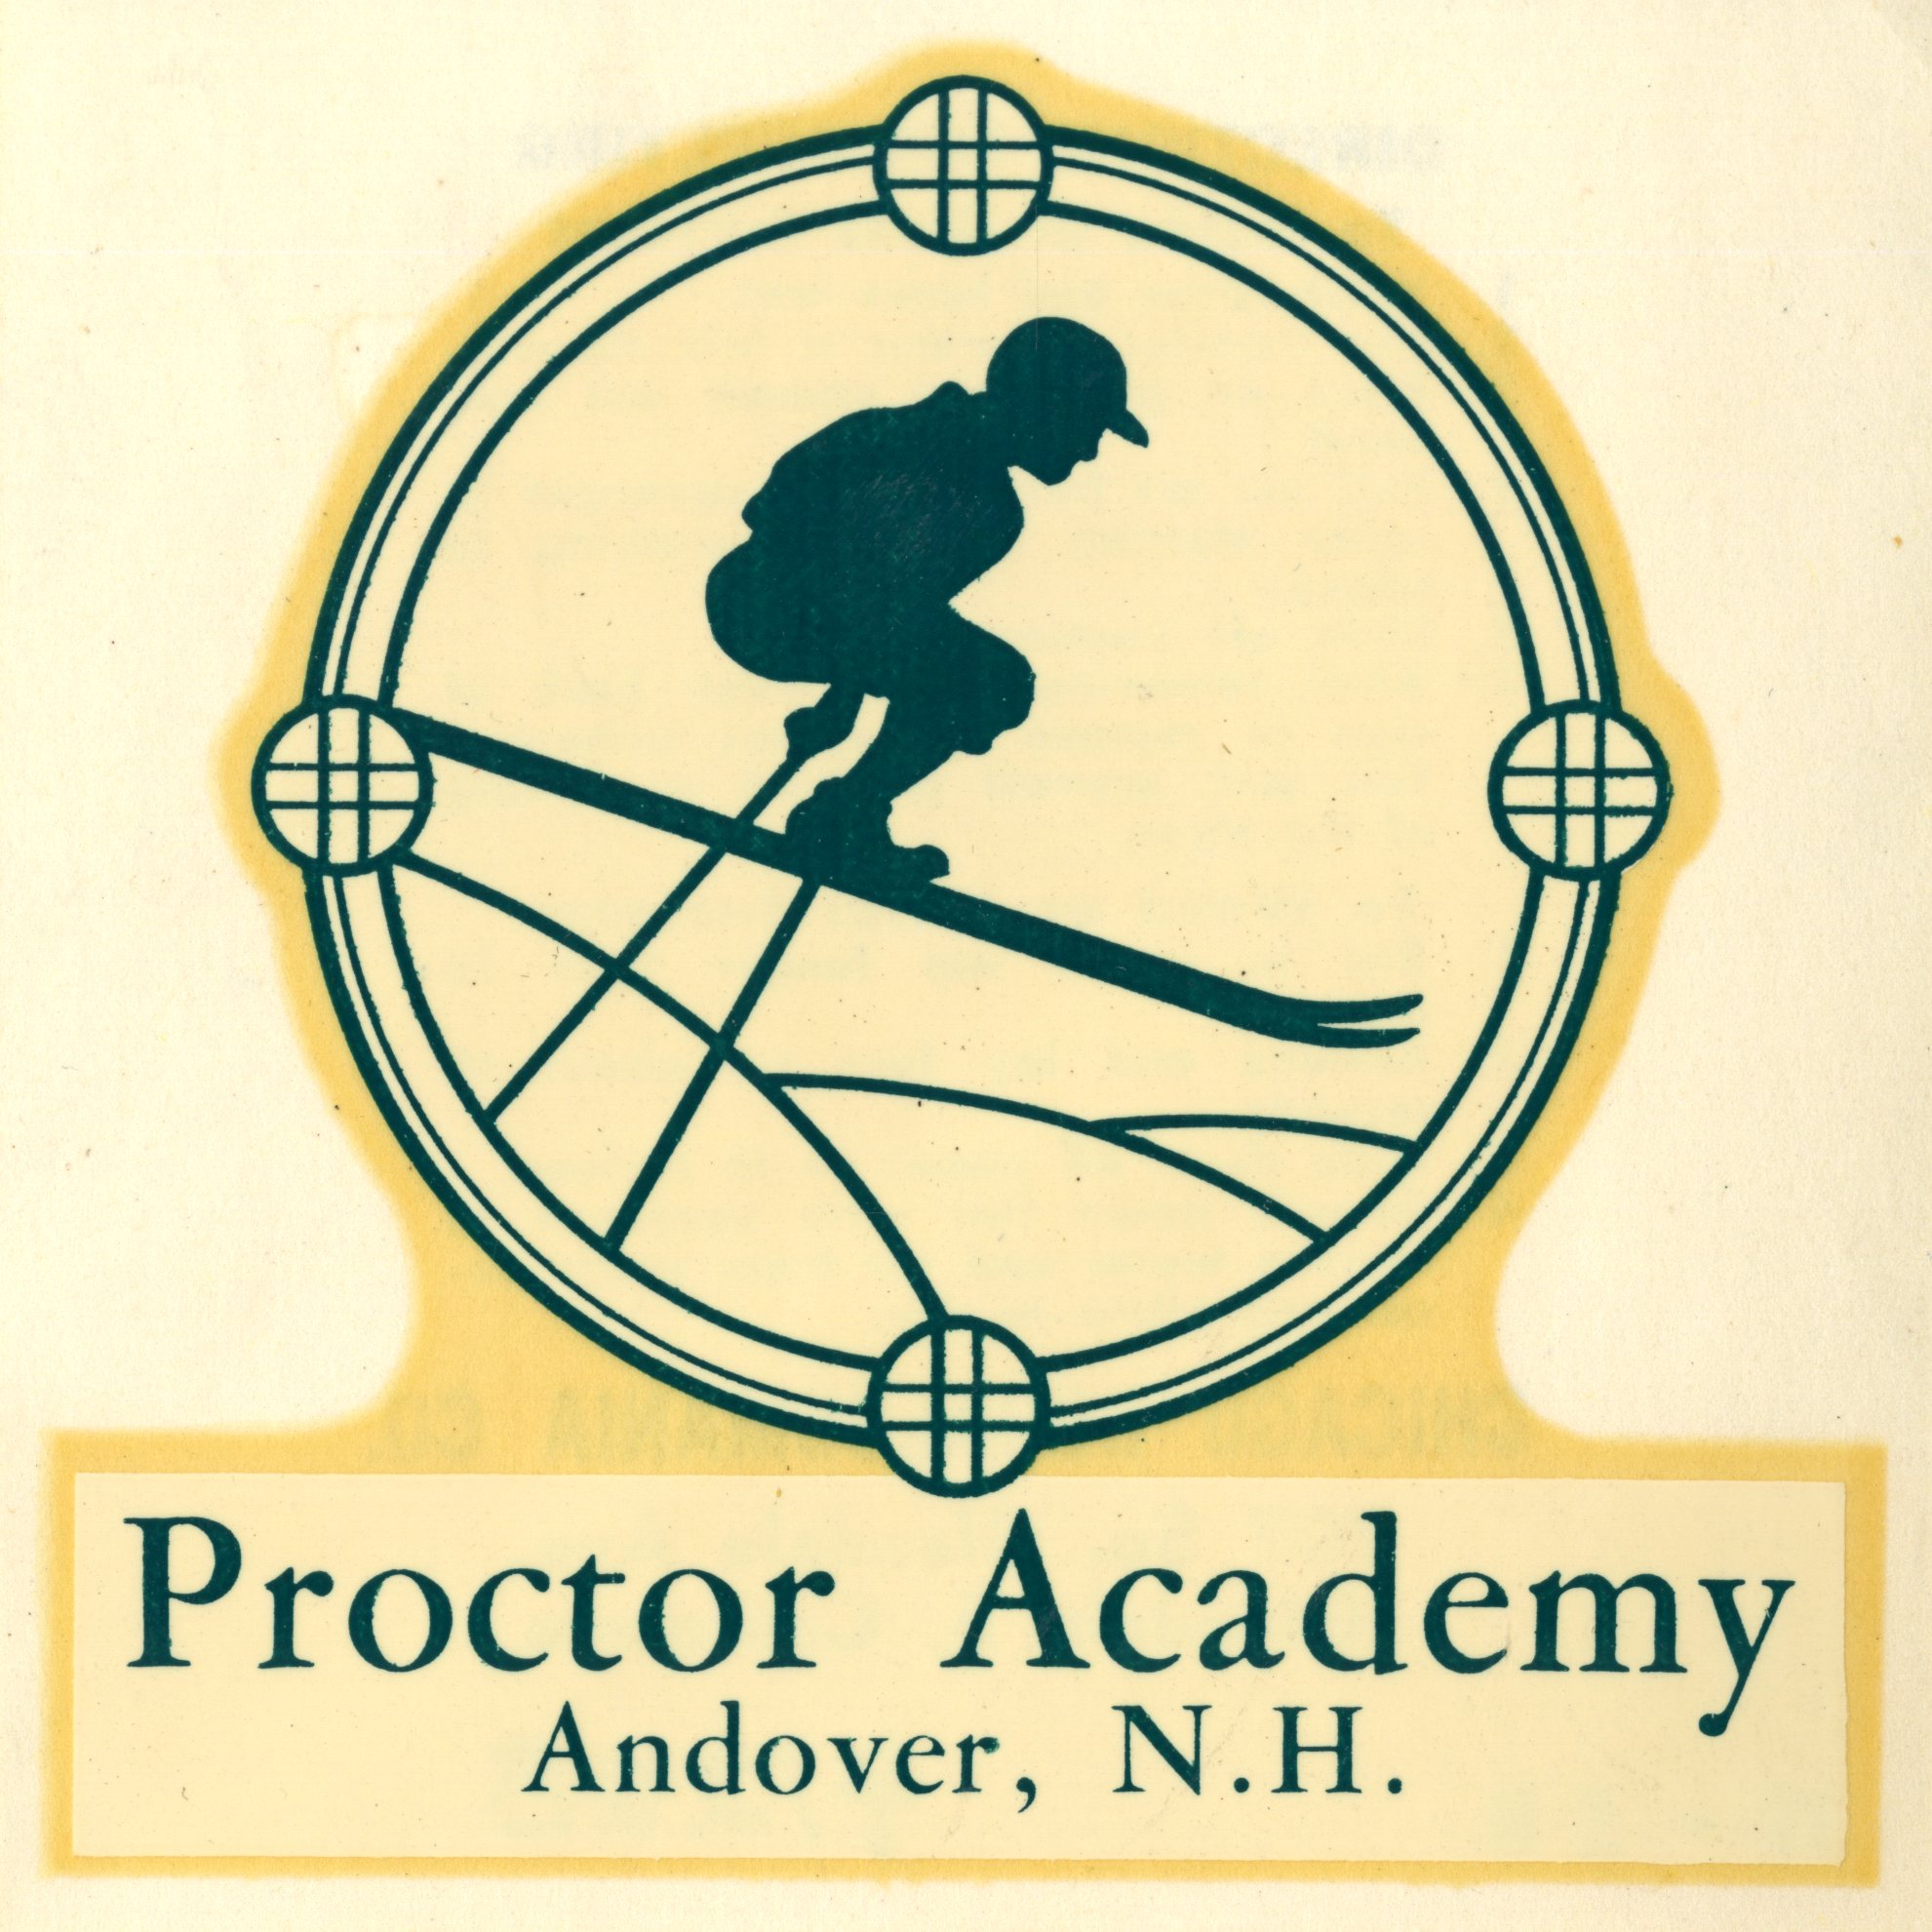 Proctor Academy School on Skis